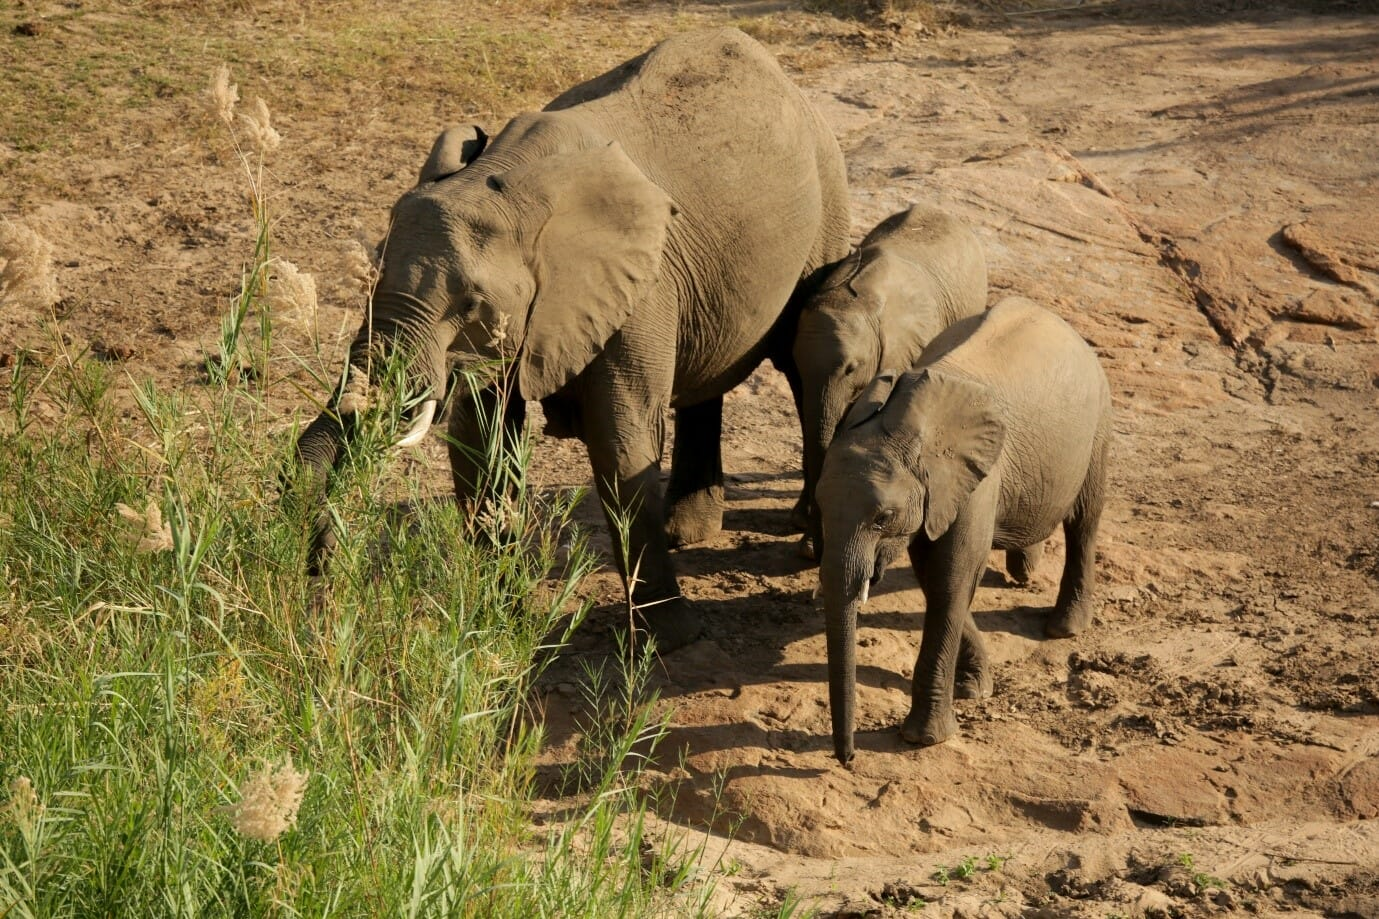 Elephants often make their appearance close to the Sabie River. Photo by Heléne Ramackers